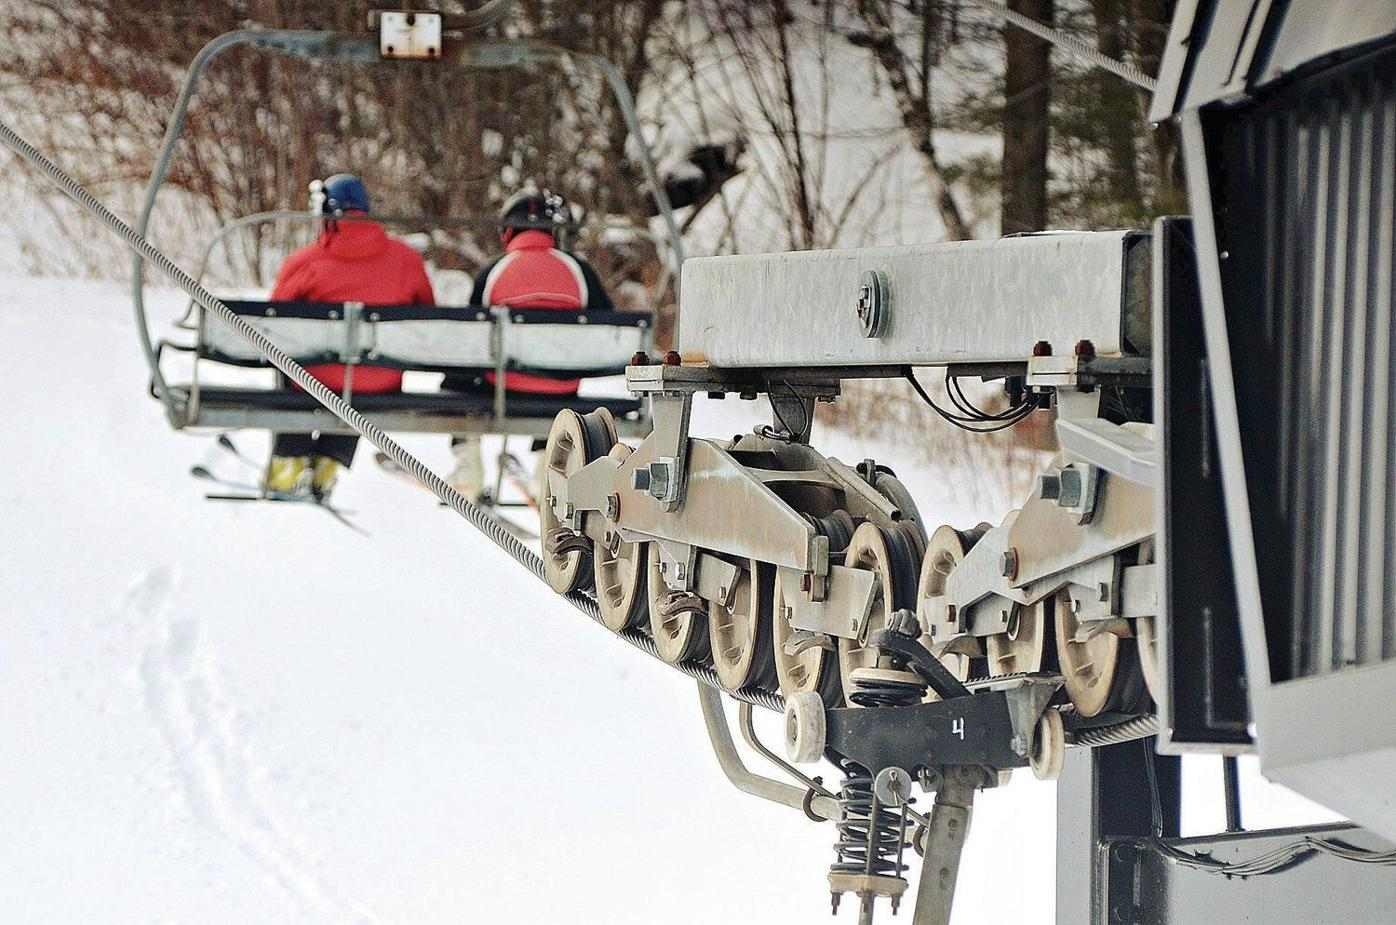 Giving winter sports a lift: Keeping chairlifts at Mount Snow safe and sound is a full-time job